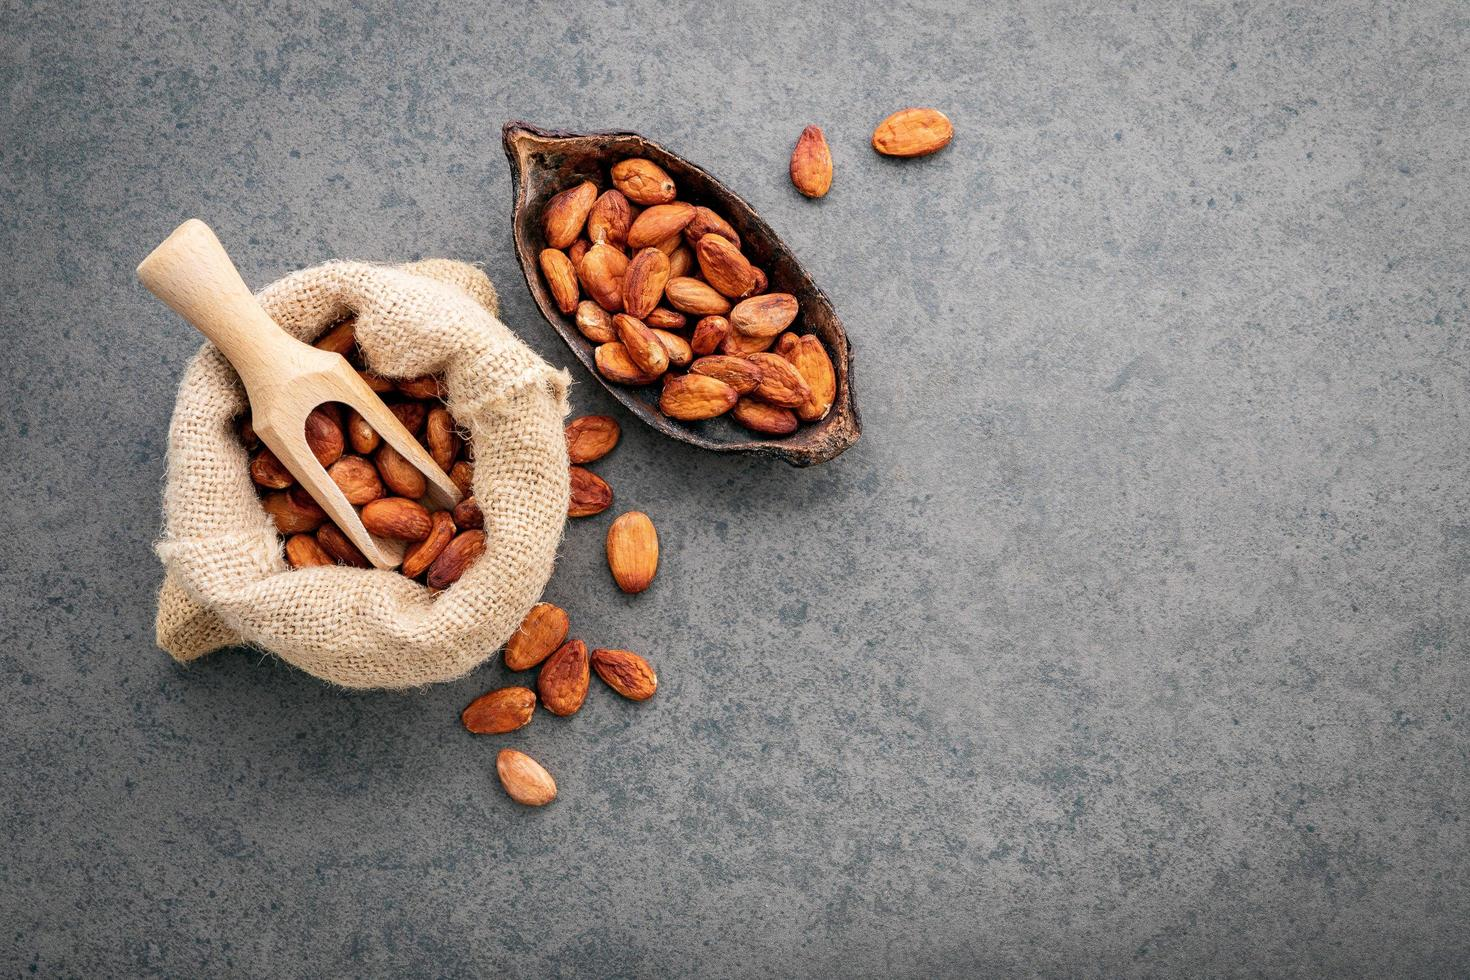 Cacao beans on concrete photo